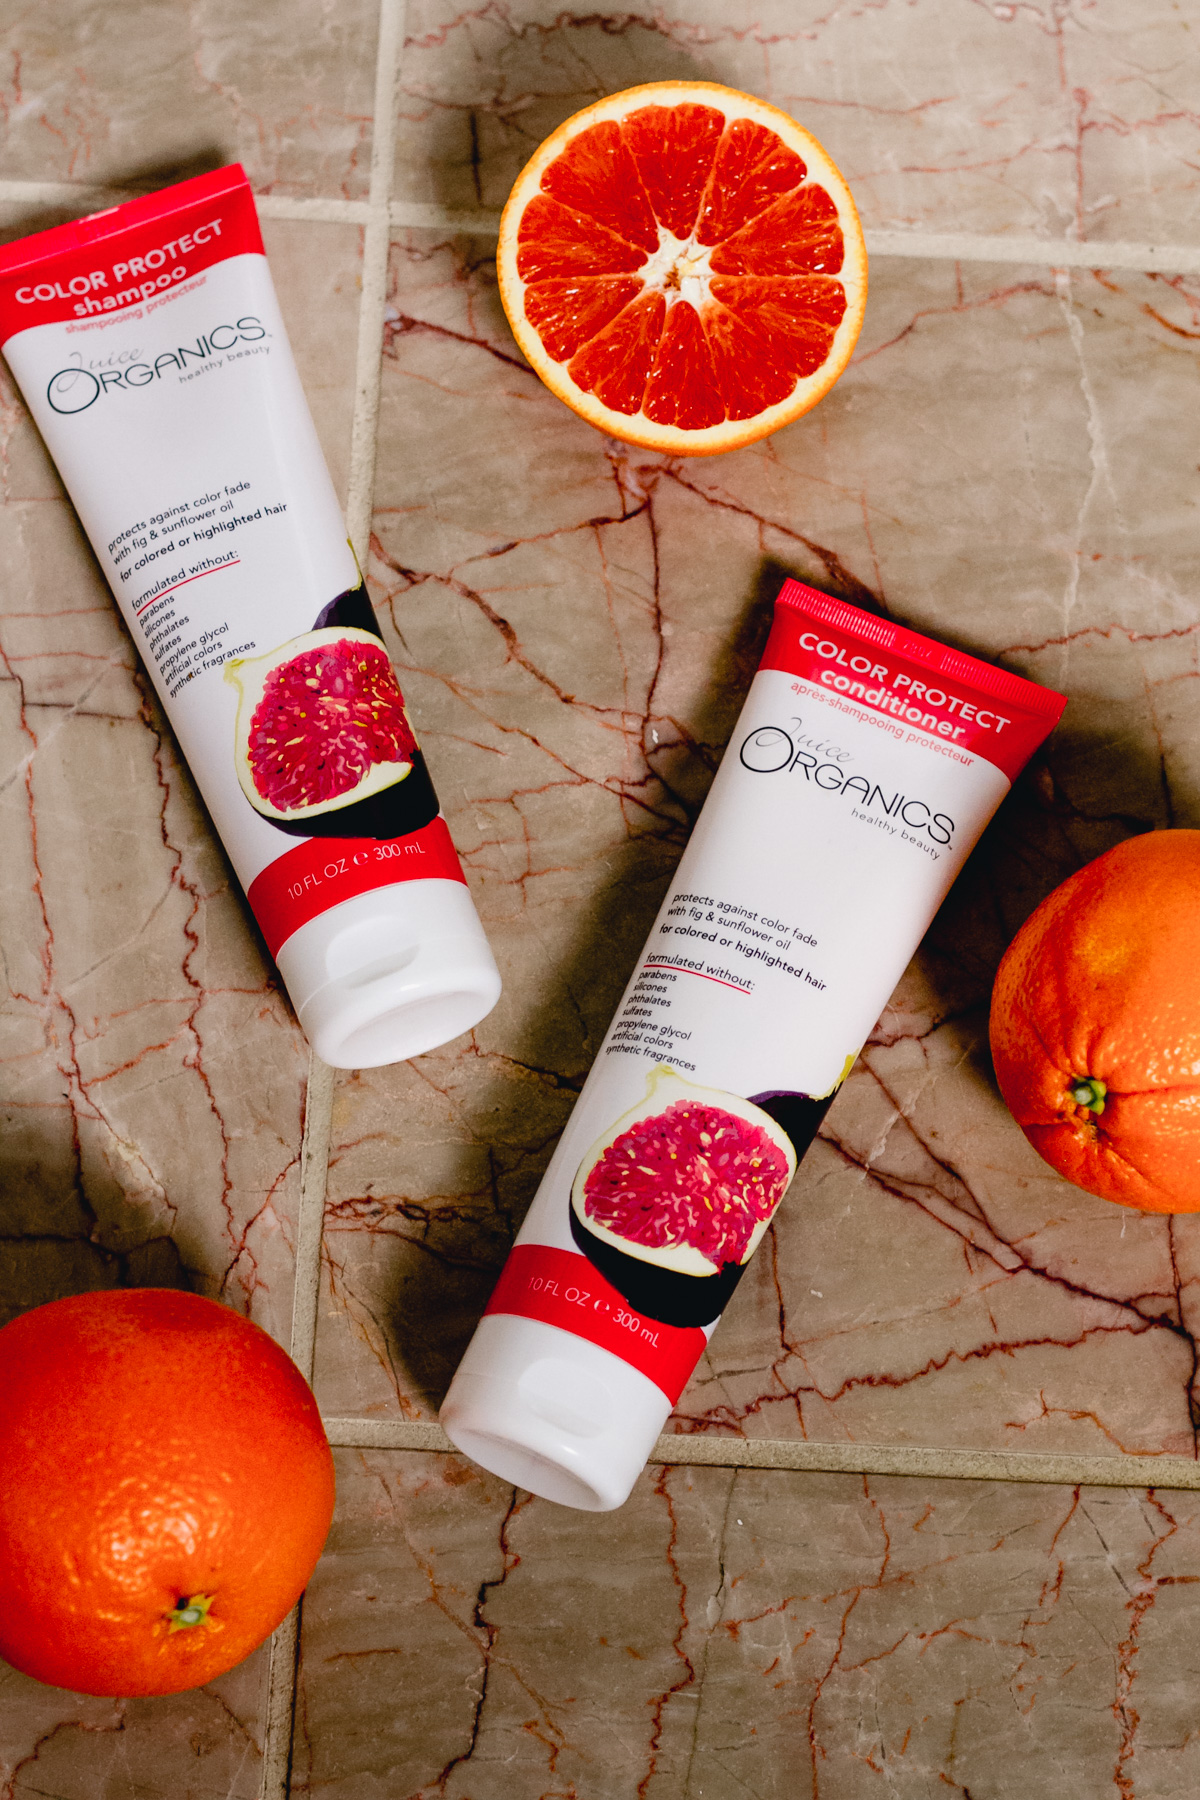 Juice Organics Color Protect Shampoo and Conditioner